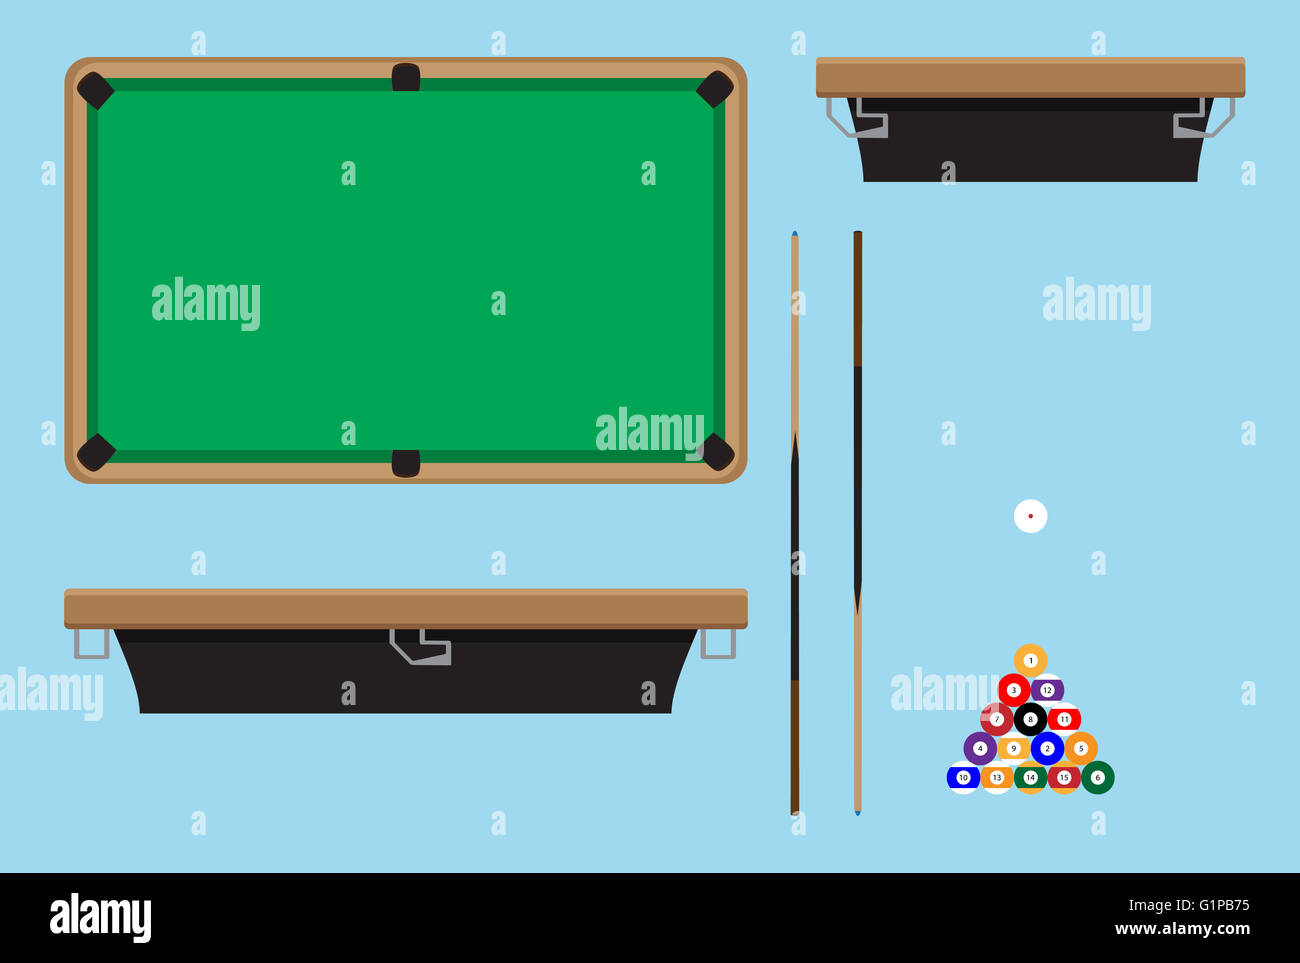 Pool Table Top Side. Billiard Table And Snooker Table, Game Room Snooker,  Hobby Game Pool And Leisure Snooker Competition. Vecto